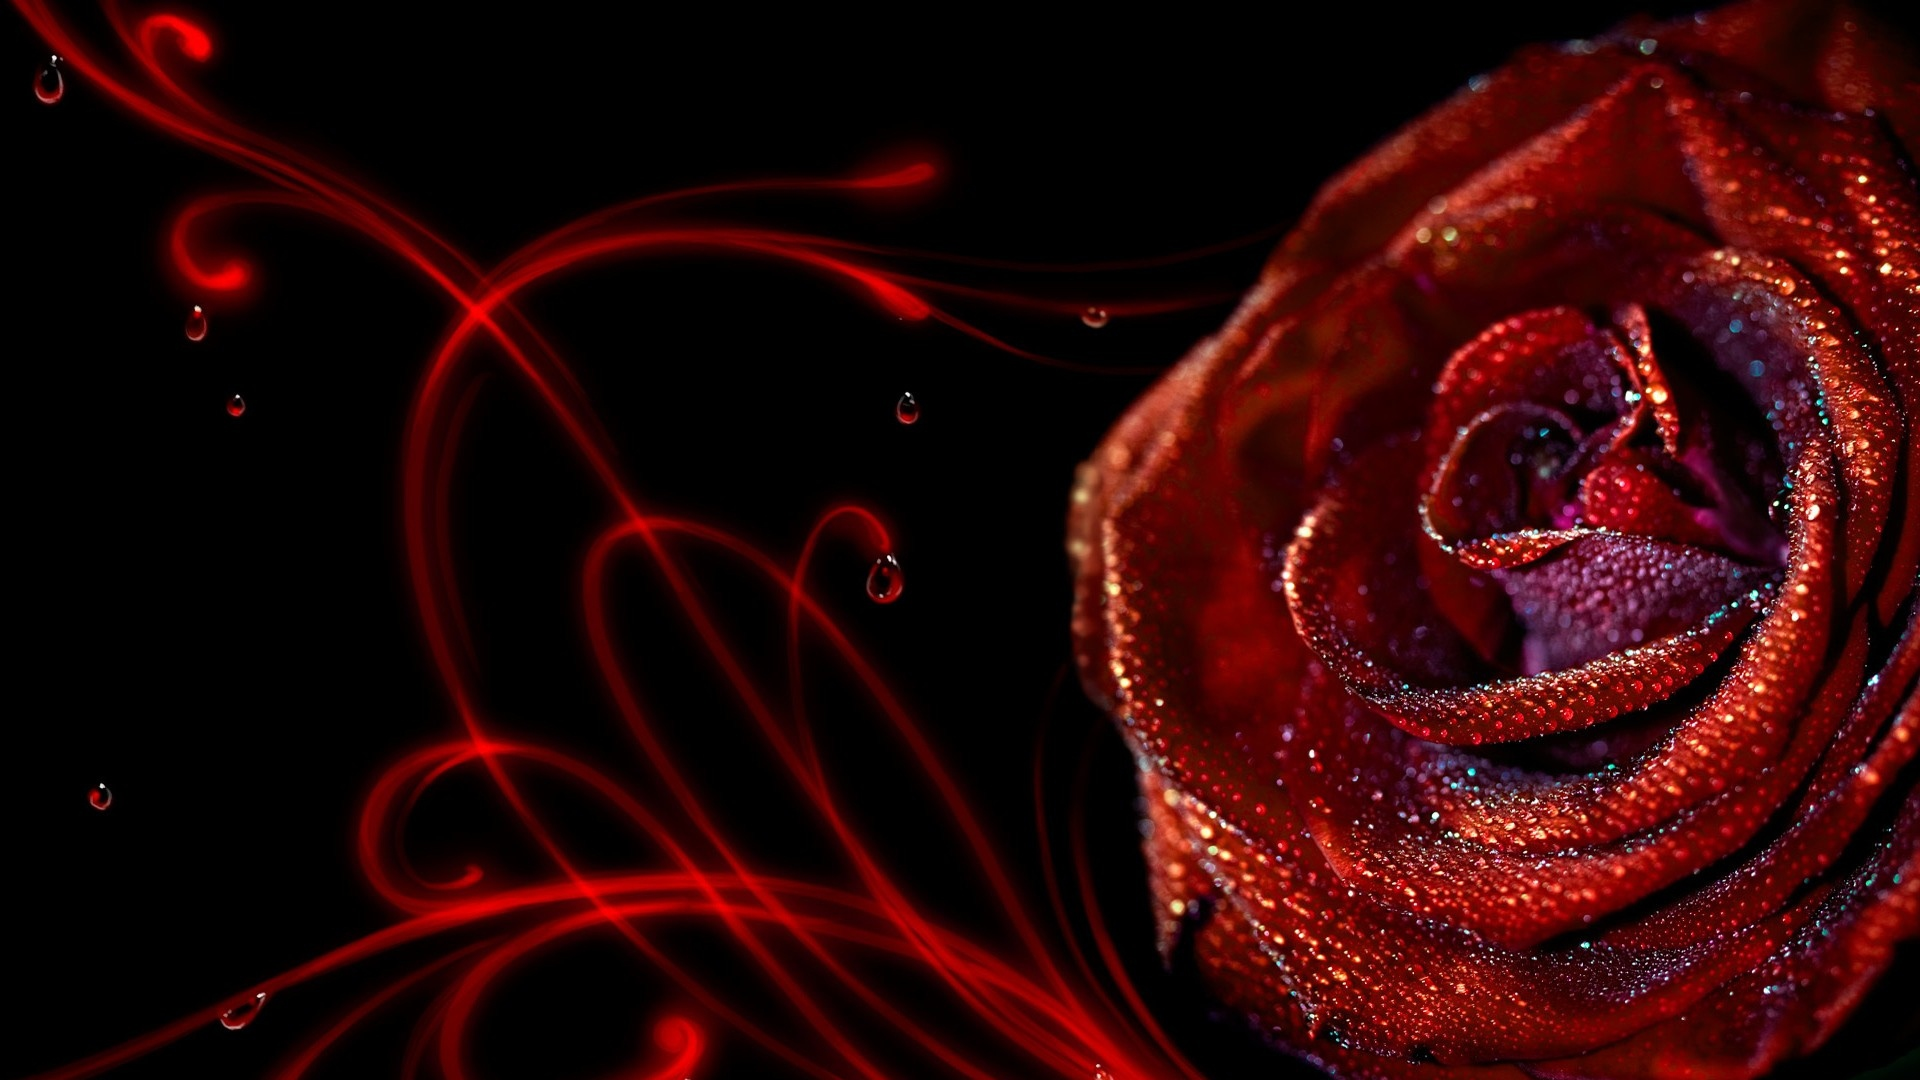 Get The Latest Rose Flower Macro News Pictures And Videos Learn All About From Wallpapers4uorg Your Wallpaper Source